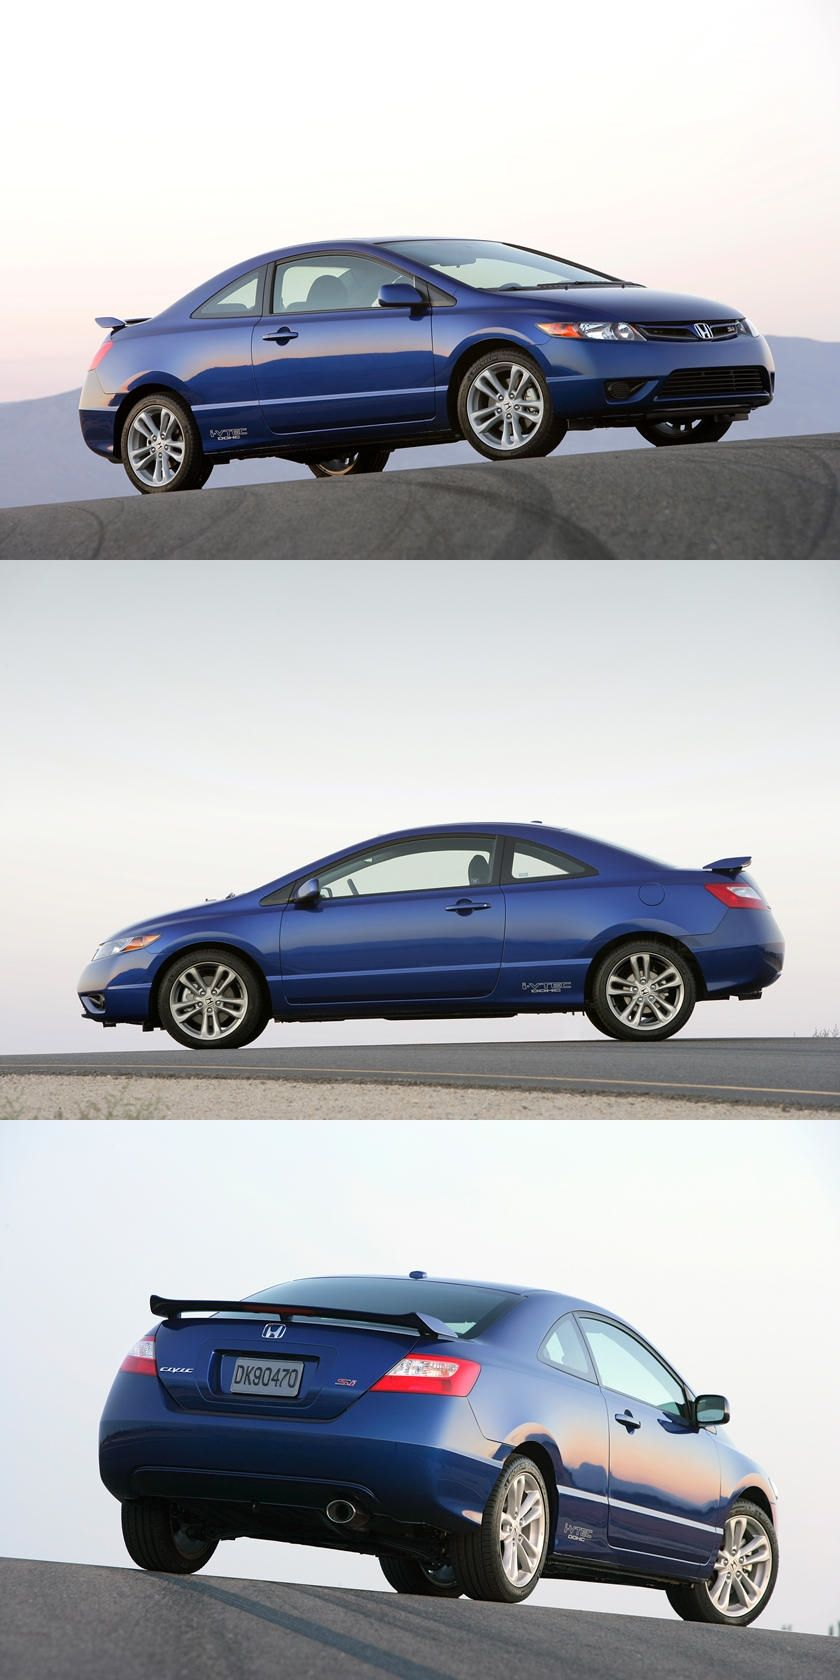 A Used Honda Civic Si Is A Young Enthusiast's Dream Car